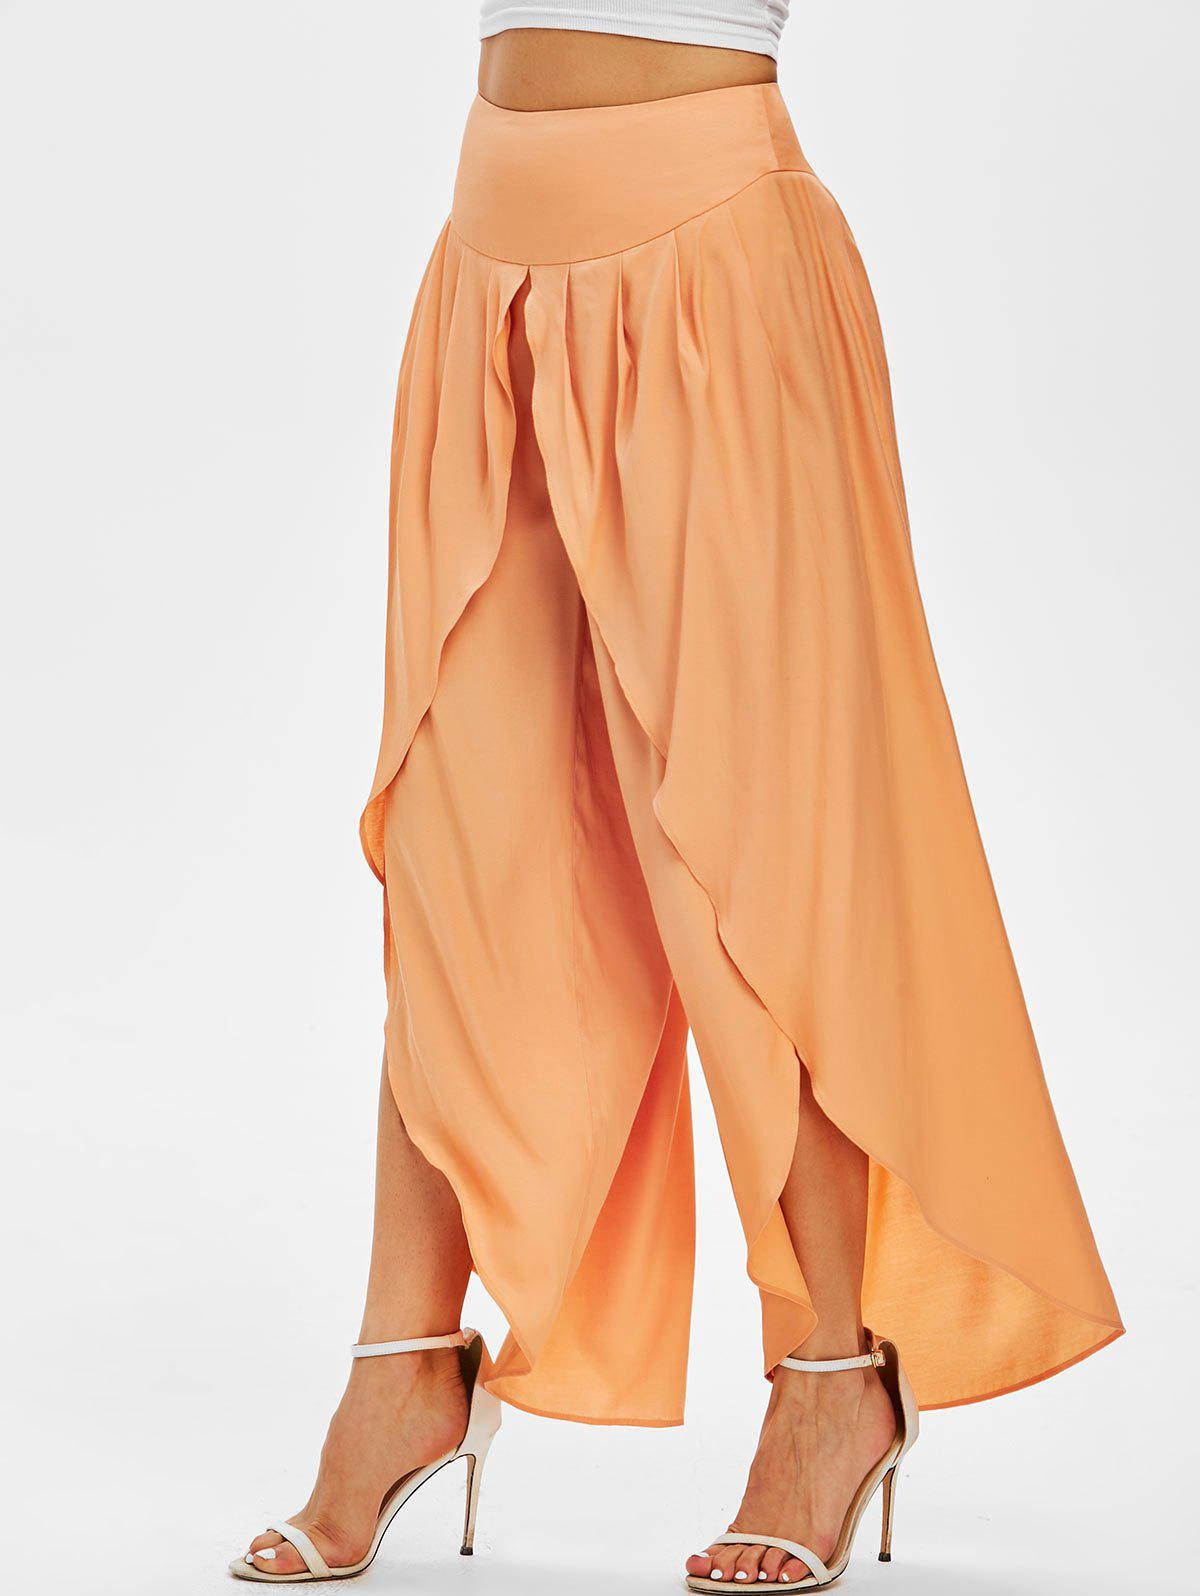 New Knife Pleat Overlap Front Palazzo Pants